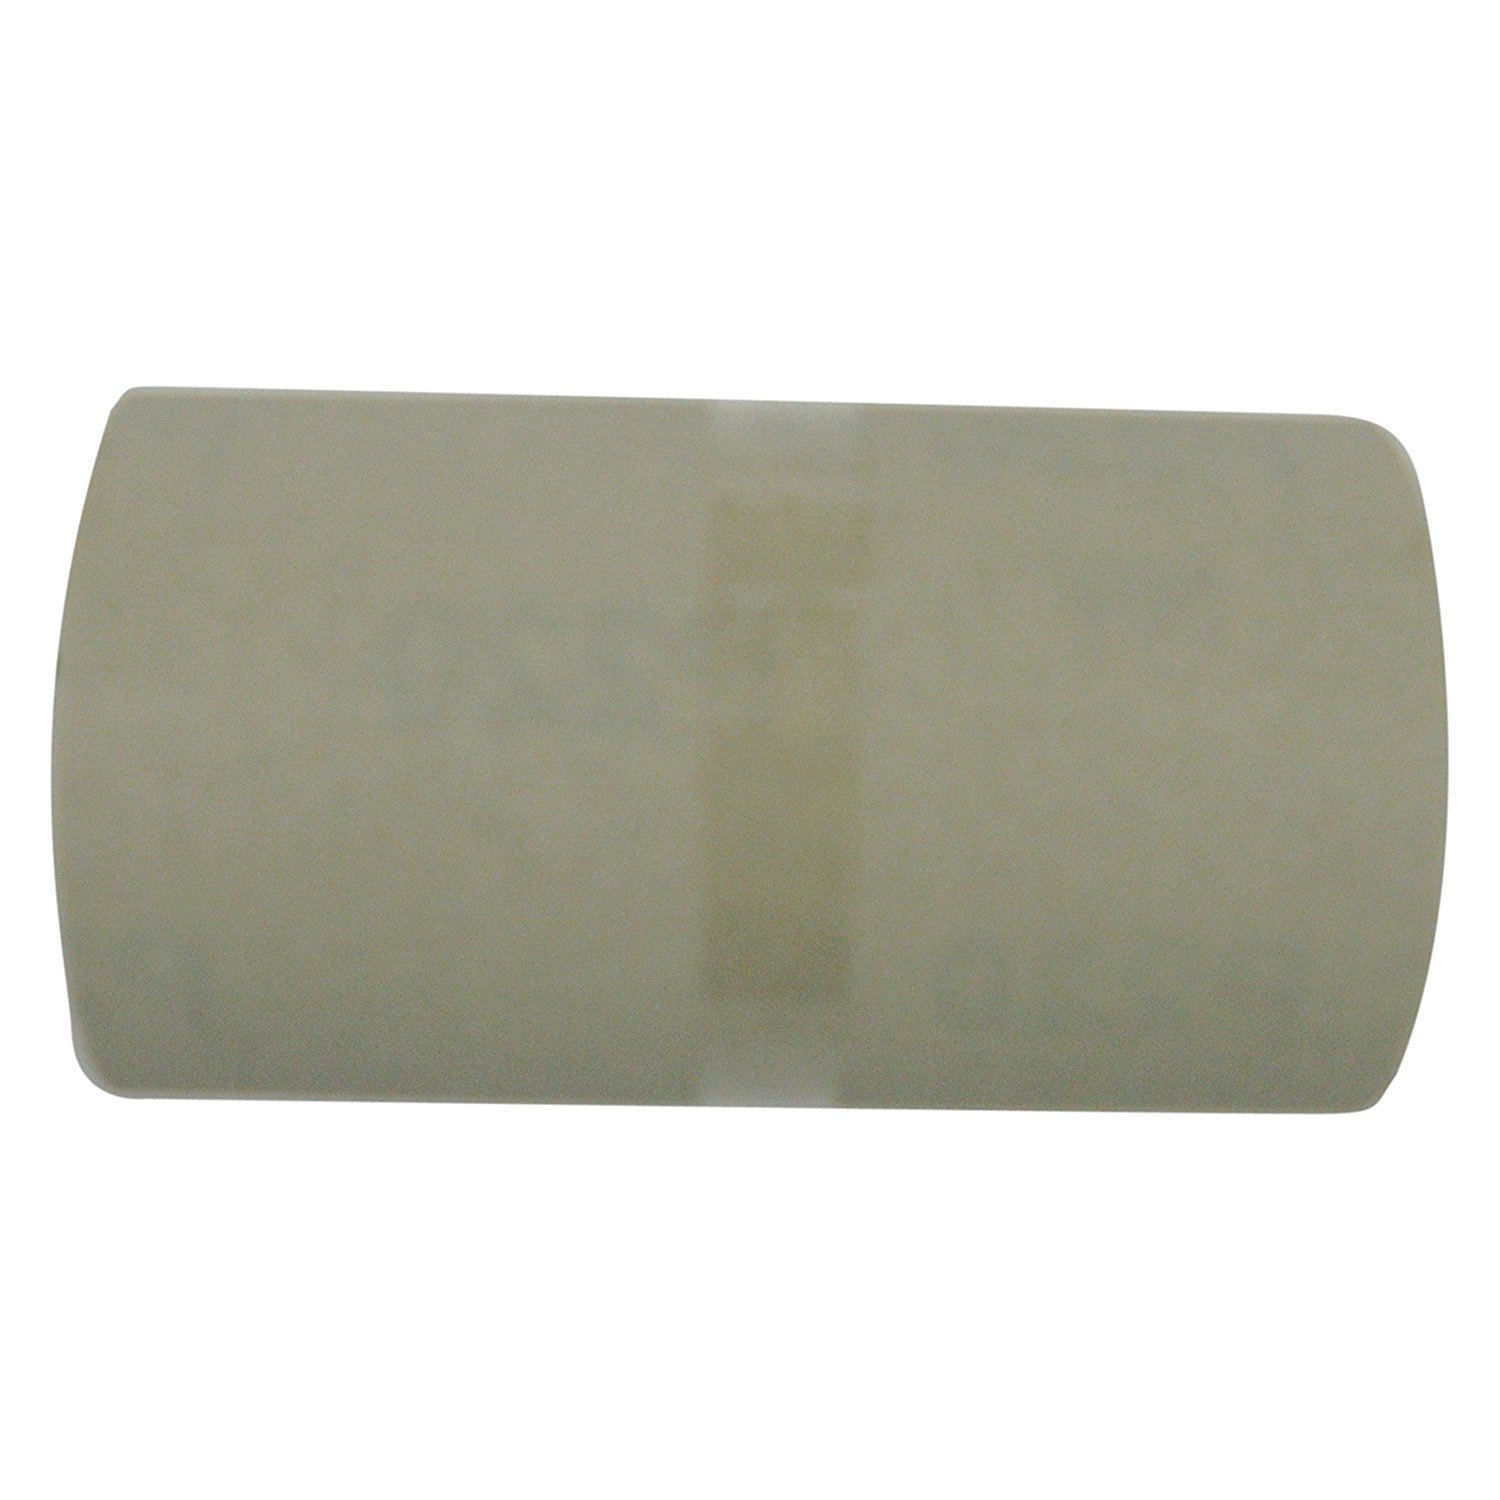 sanding paper Paper backing for coated abrasives comes in four weights: a, c, d, and e a (also referred to as finishing) is the lightest weight and is designed for light sanding.